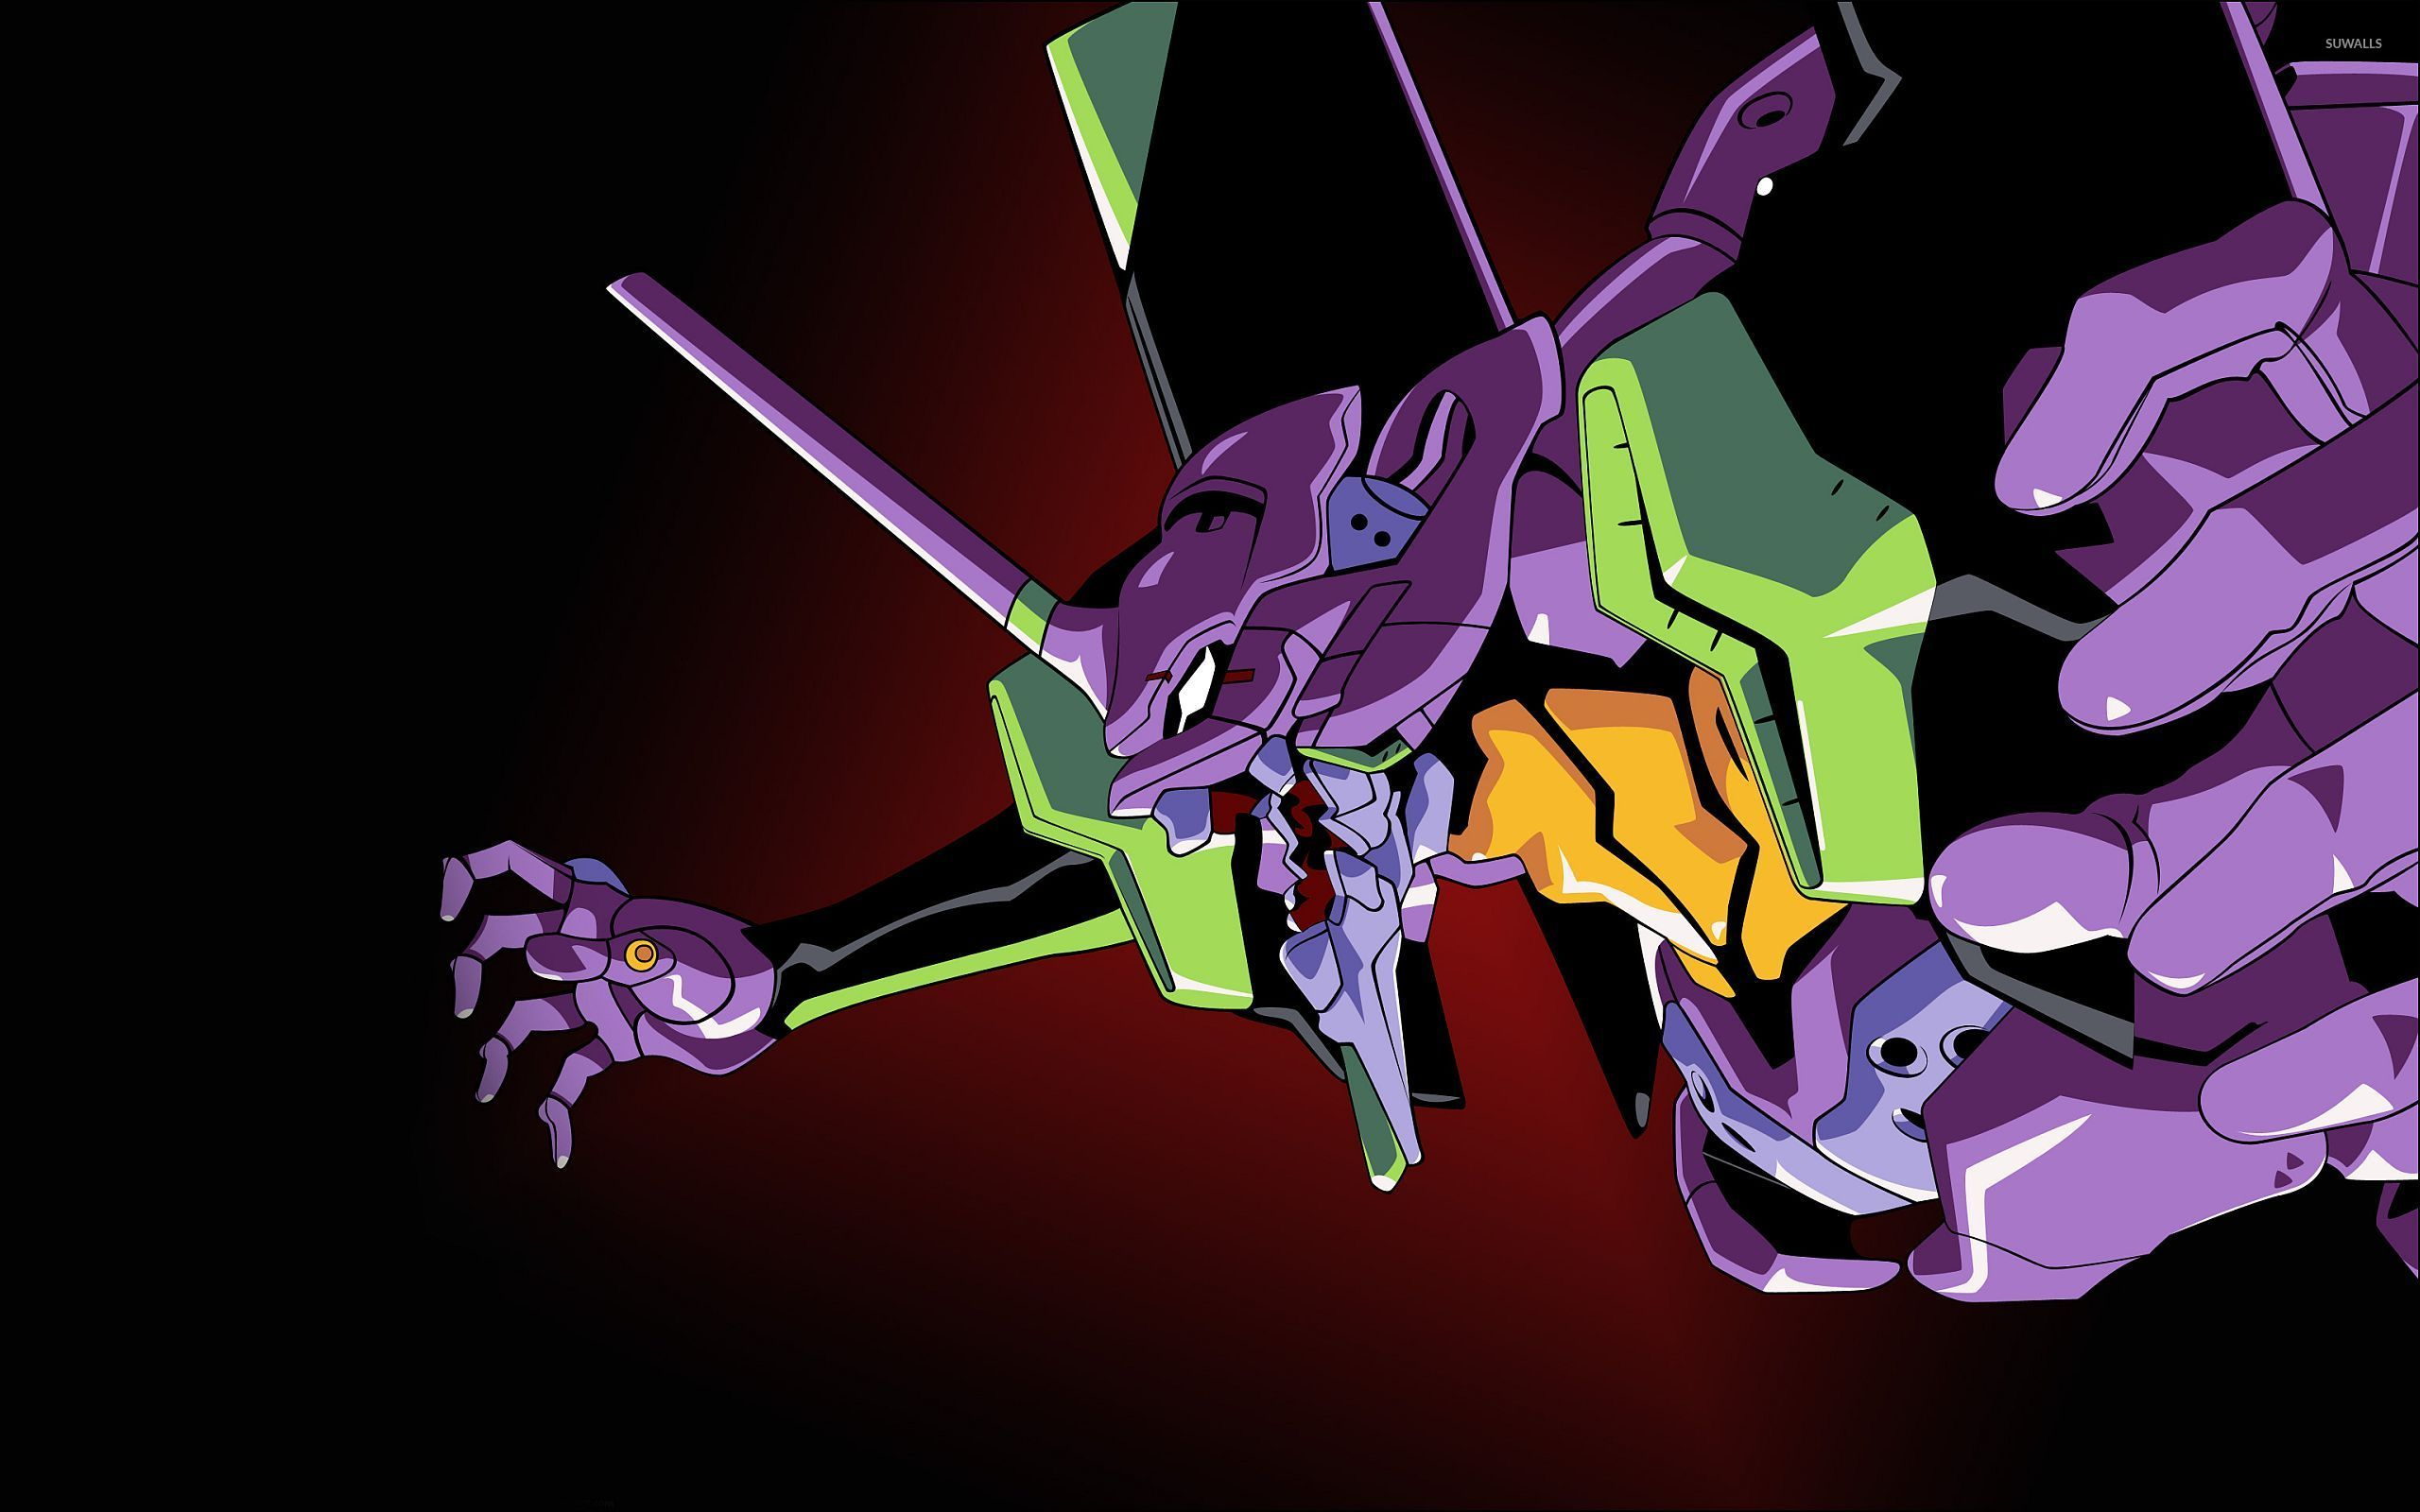 Neon Genesis Evangelion 3 Wallpaper Anime Wallpapers 8846